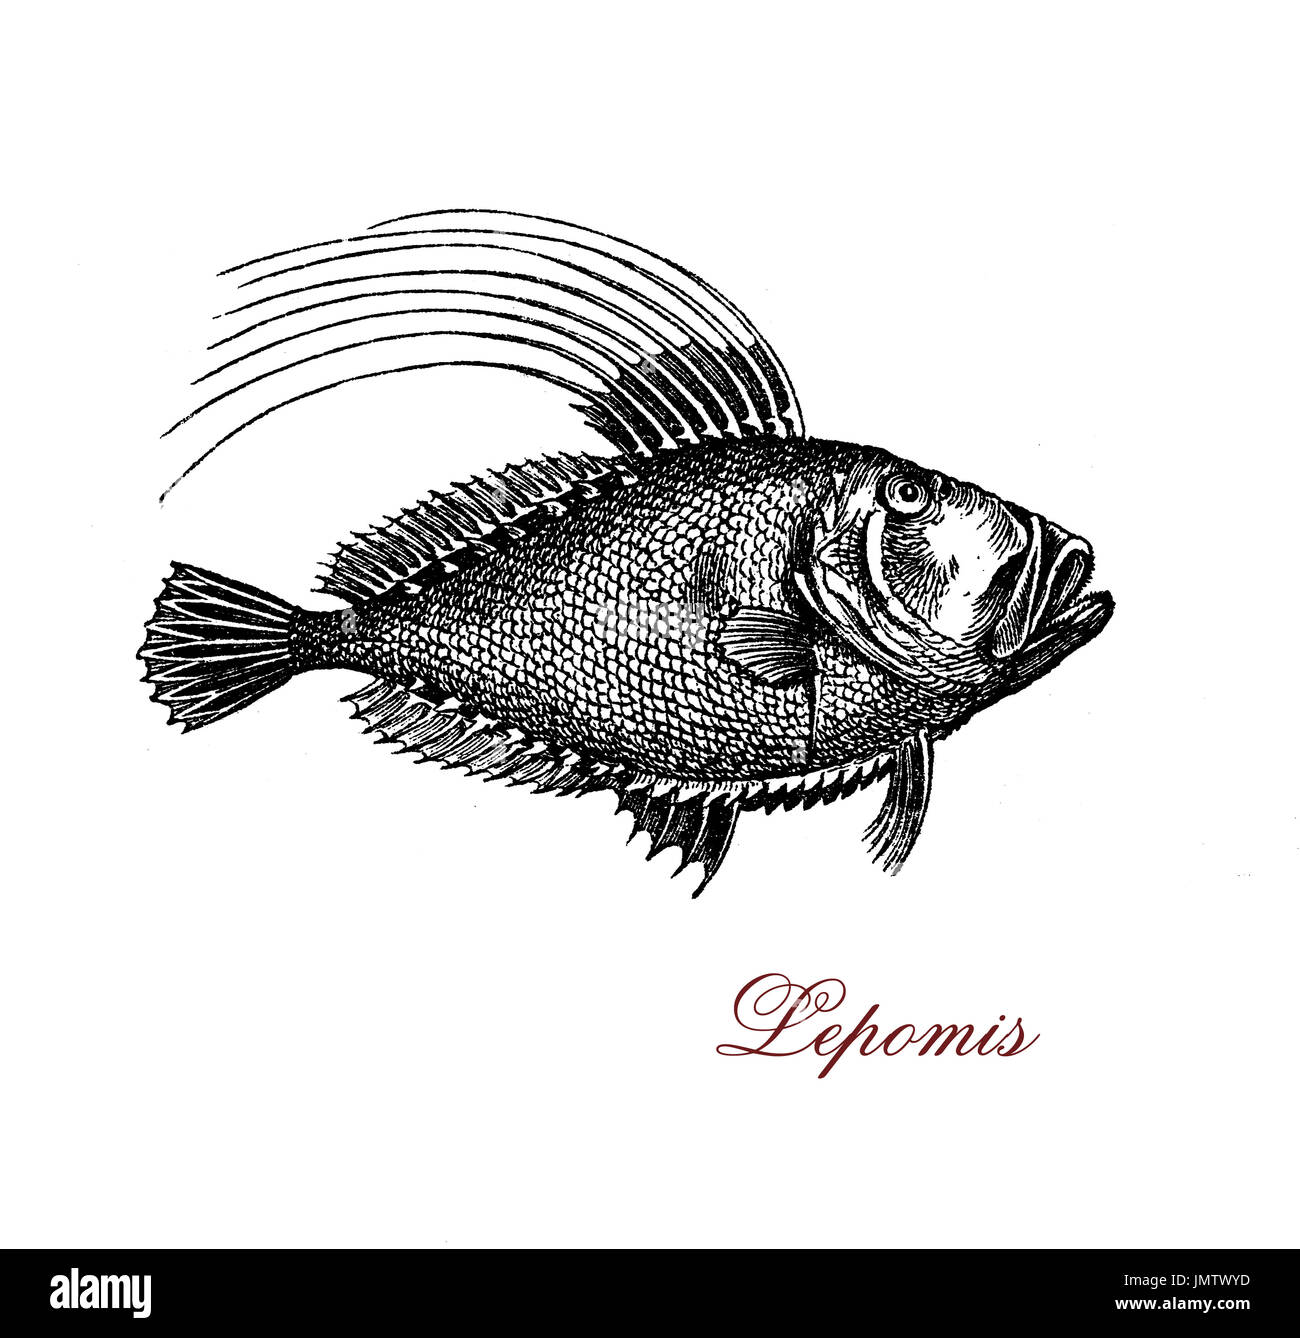 Vintage engraving of lepomis or sunfish, freshwater fish widely distributed throughout the lakes and rivers of North America - Stock Image